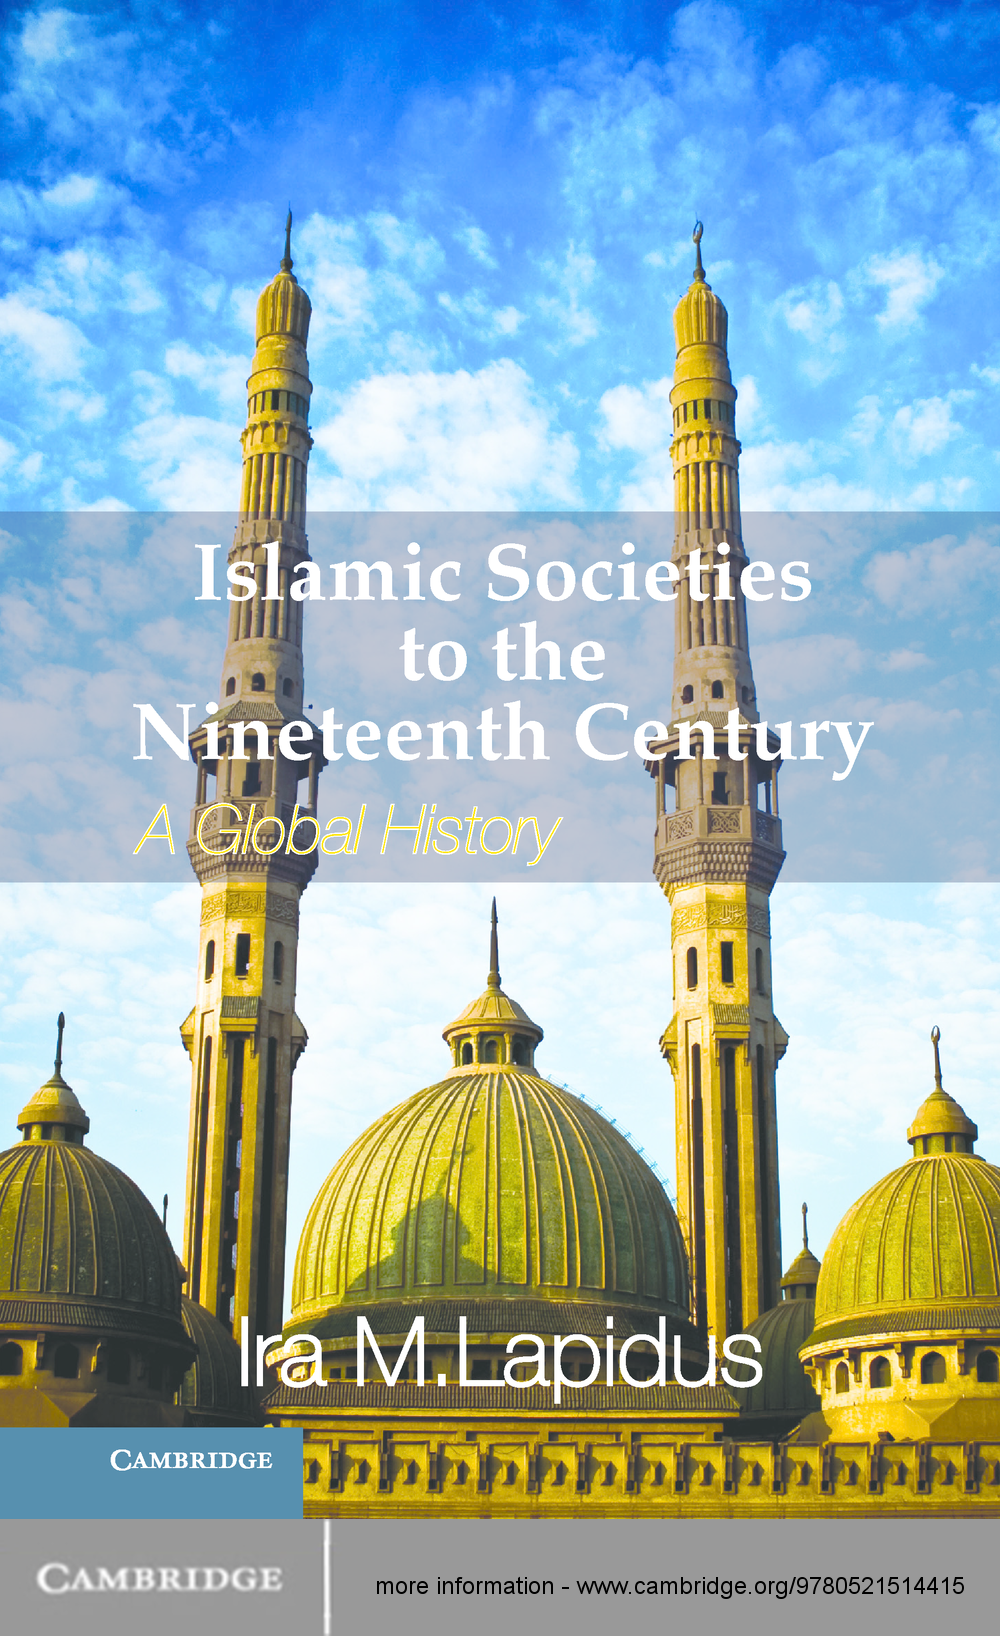 Islamic Societies to the Nineteenth Century A Global History